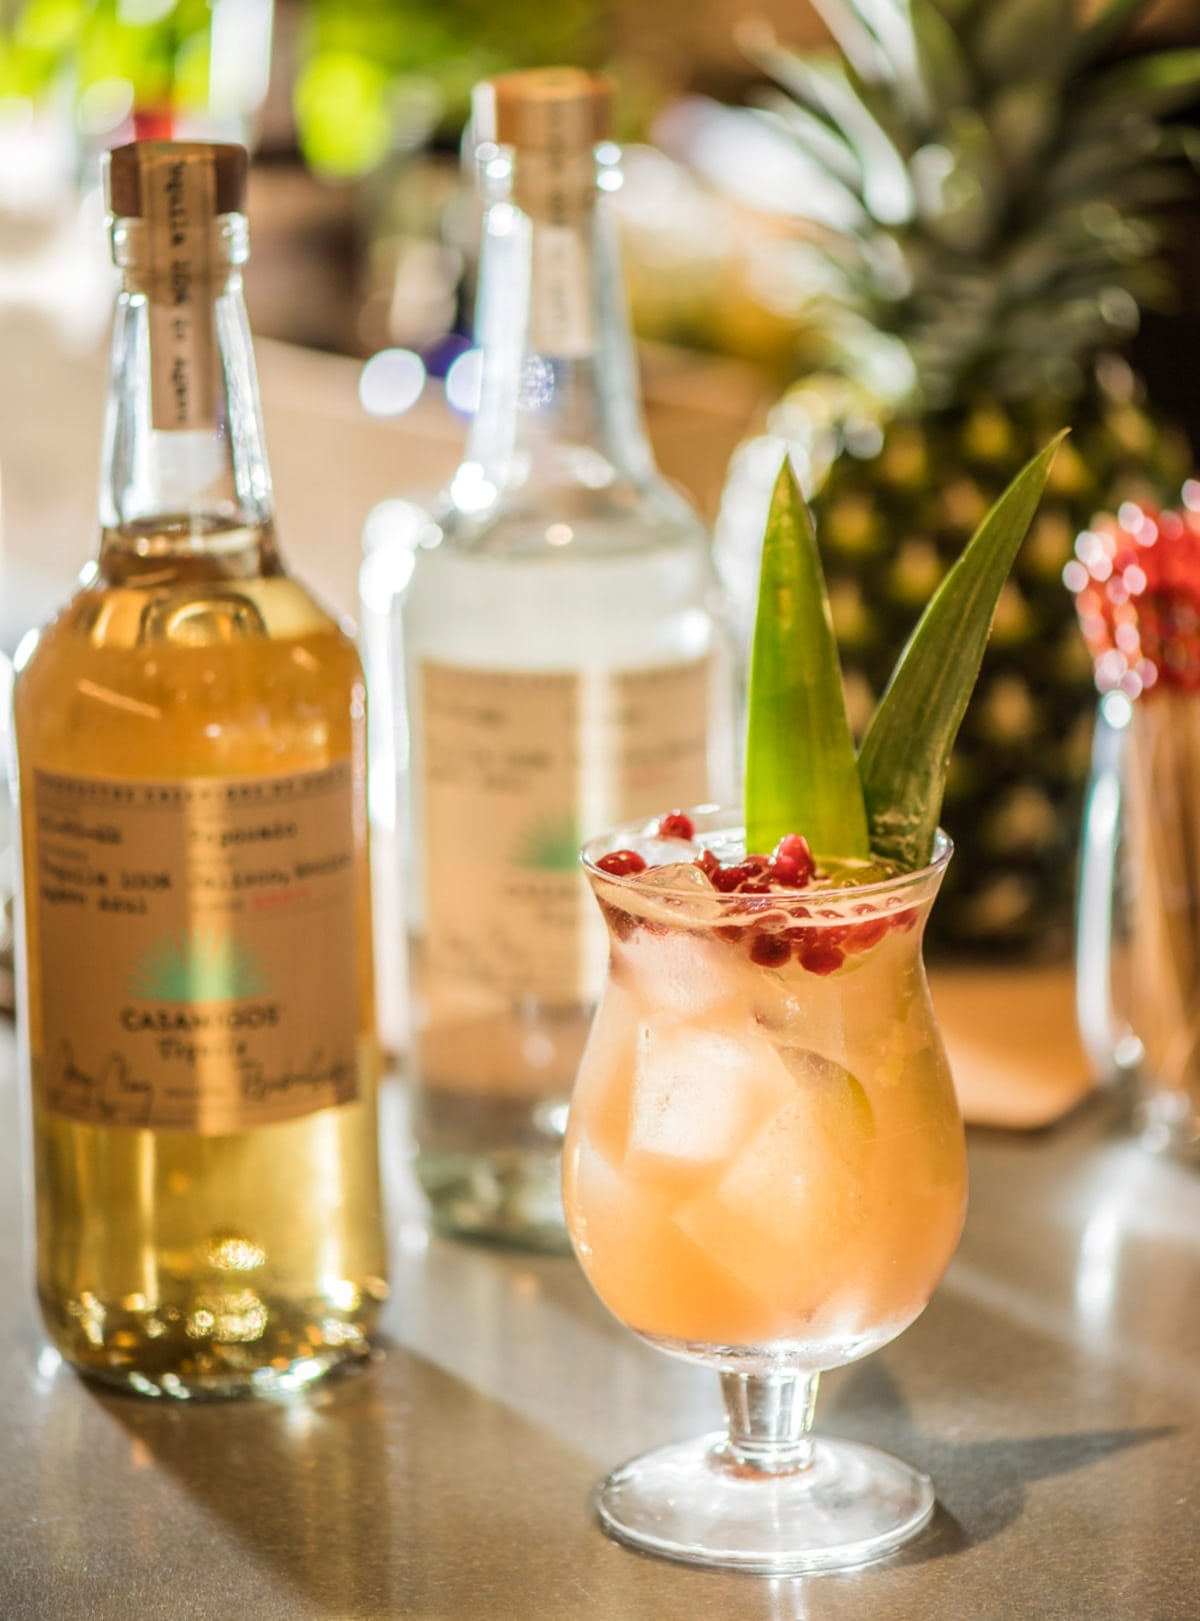 The-Rising-Sol-Casamigos-Cocktail-at-Casa-Tua-Cucina_Shot-by-Felipe-Cuevas-.jpg